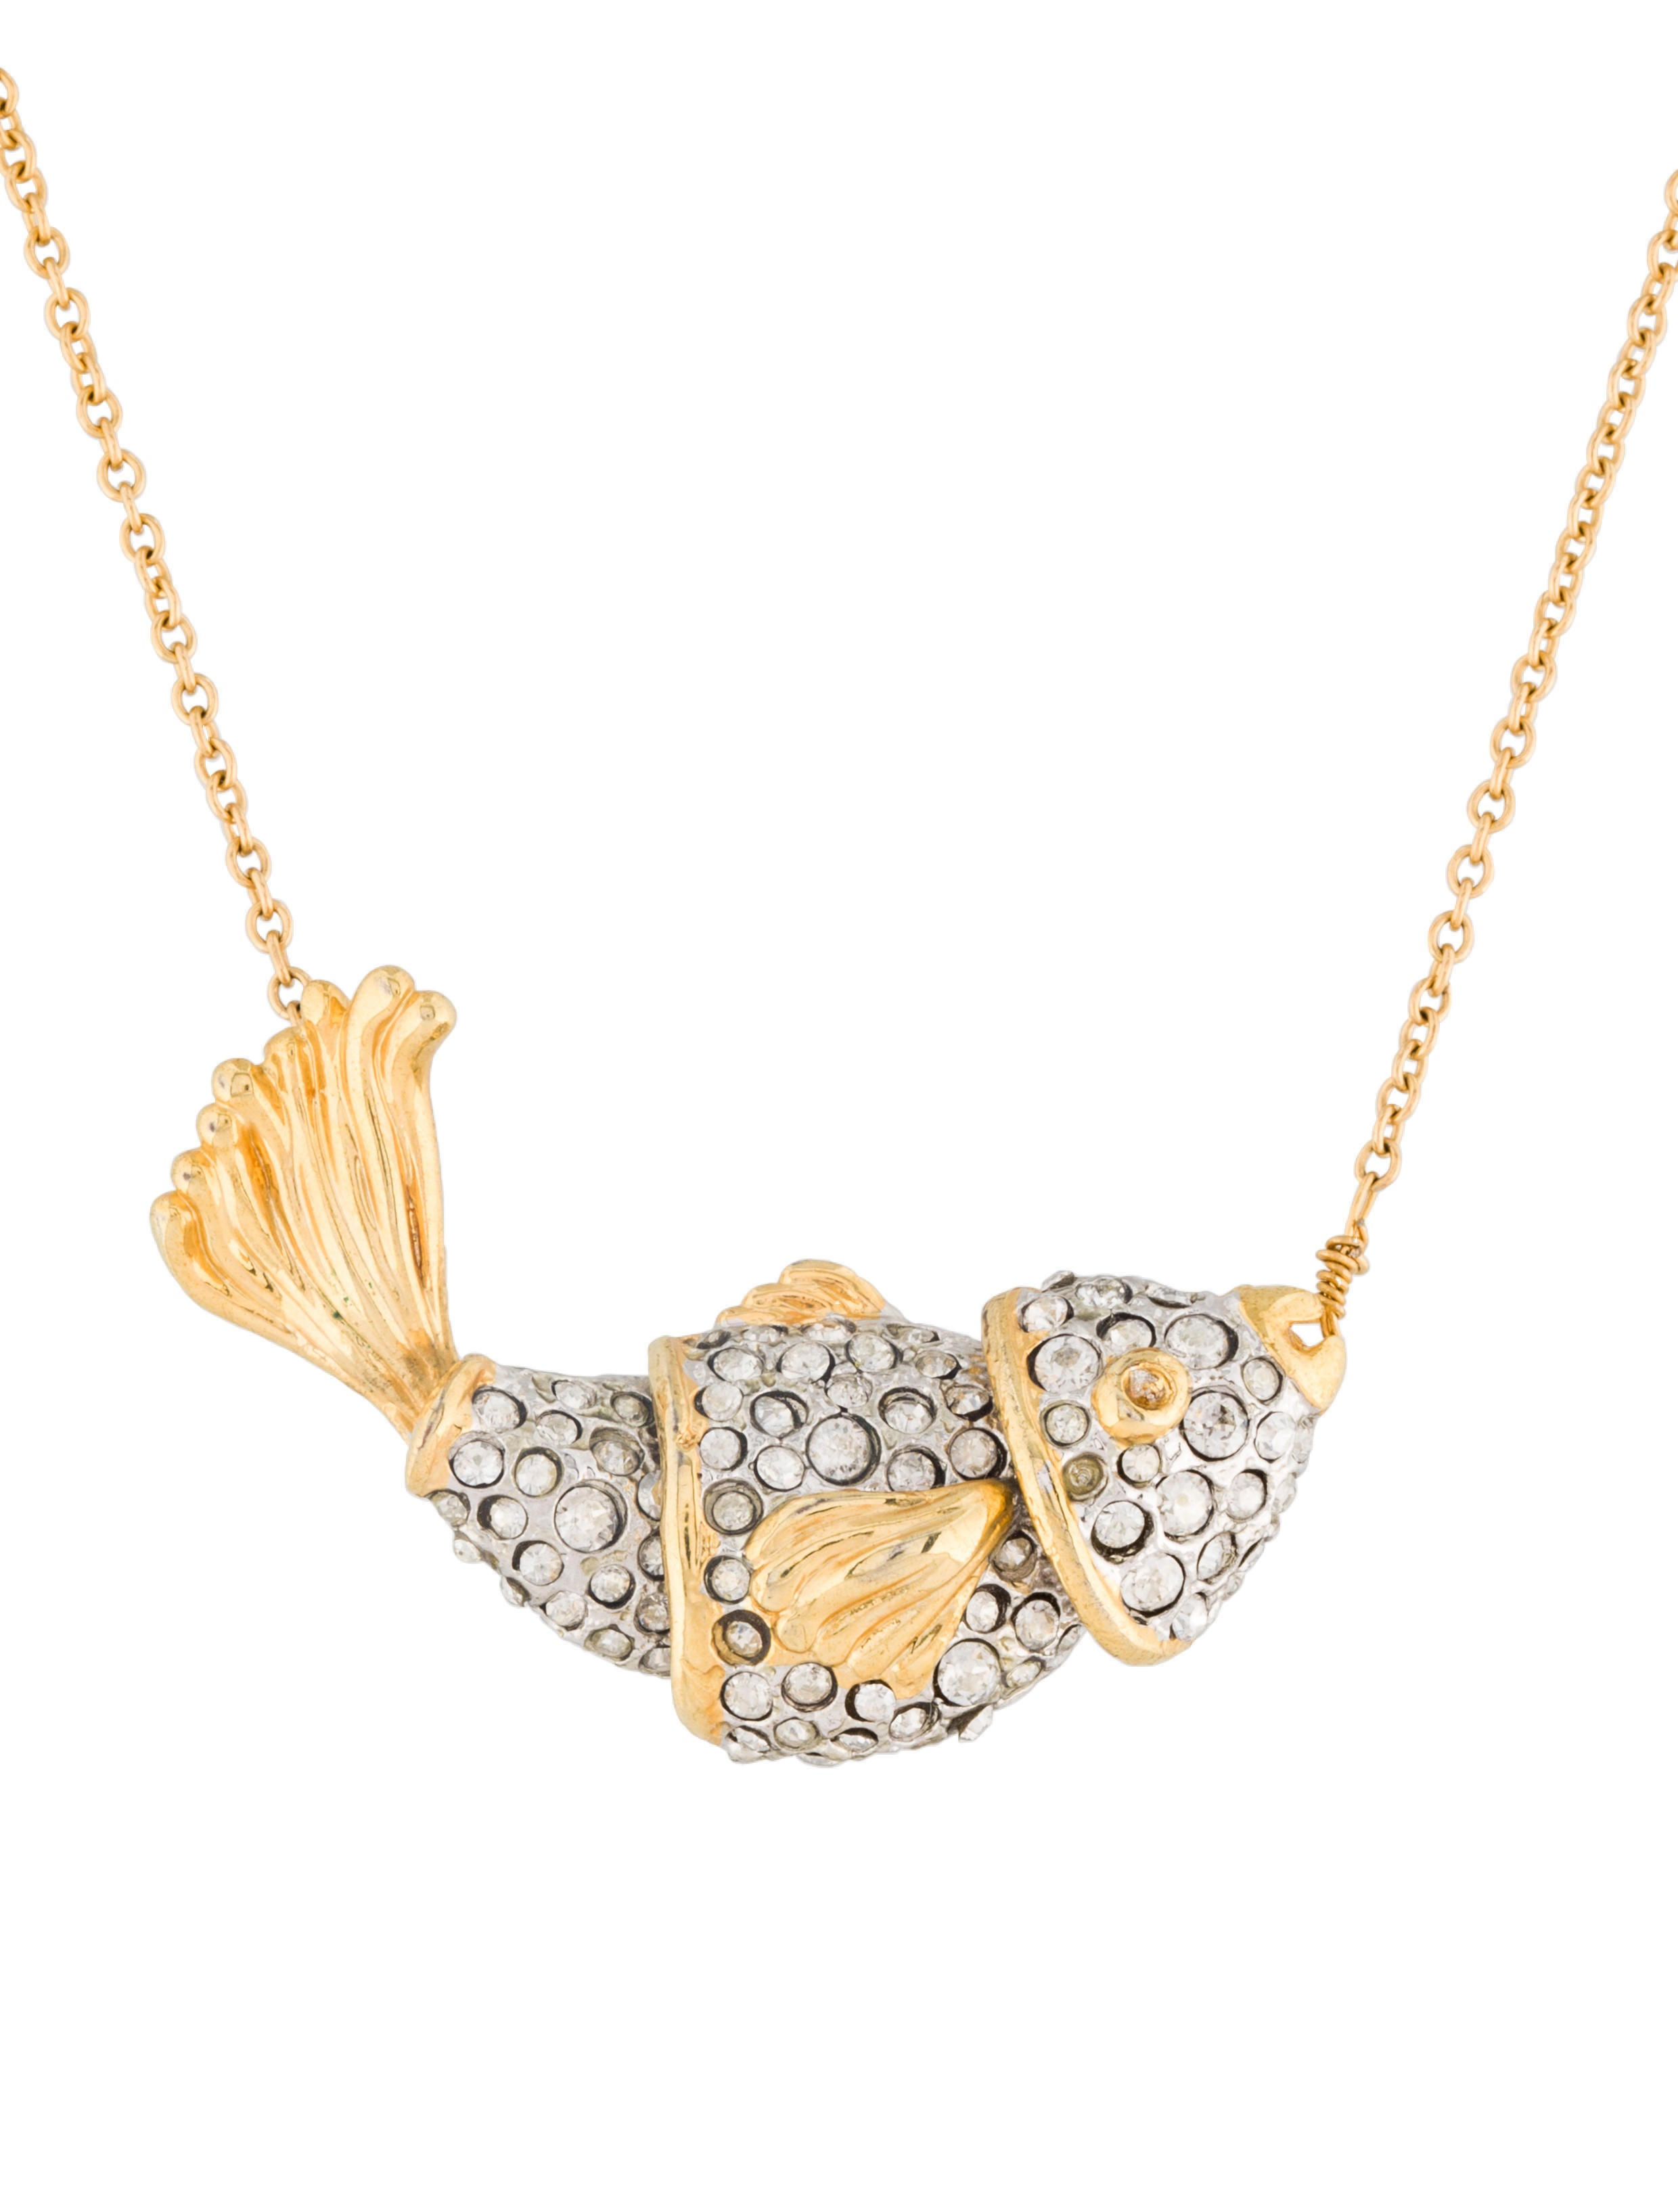 jagged crystal draped alexis l bib havisham bittar miss necklace